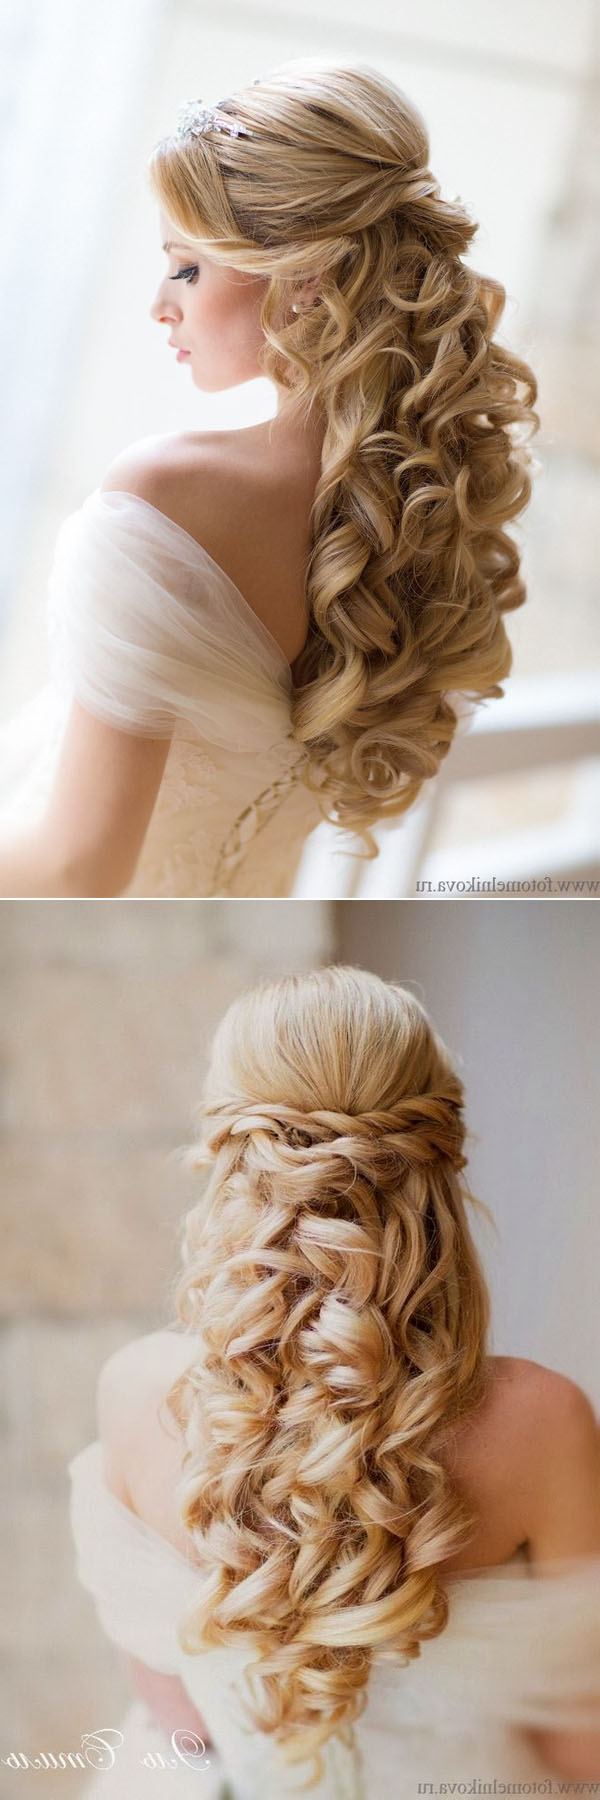 20 Awesome Half Up Half Down Wedding Hairstyle Ideas With Fashionable Twists And Curls In Bridal Half Up Bridal Hairstyles (View 11 of 20)